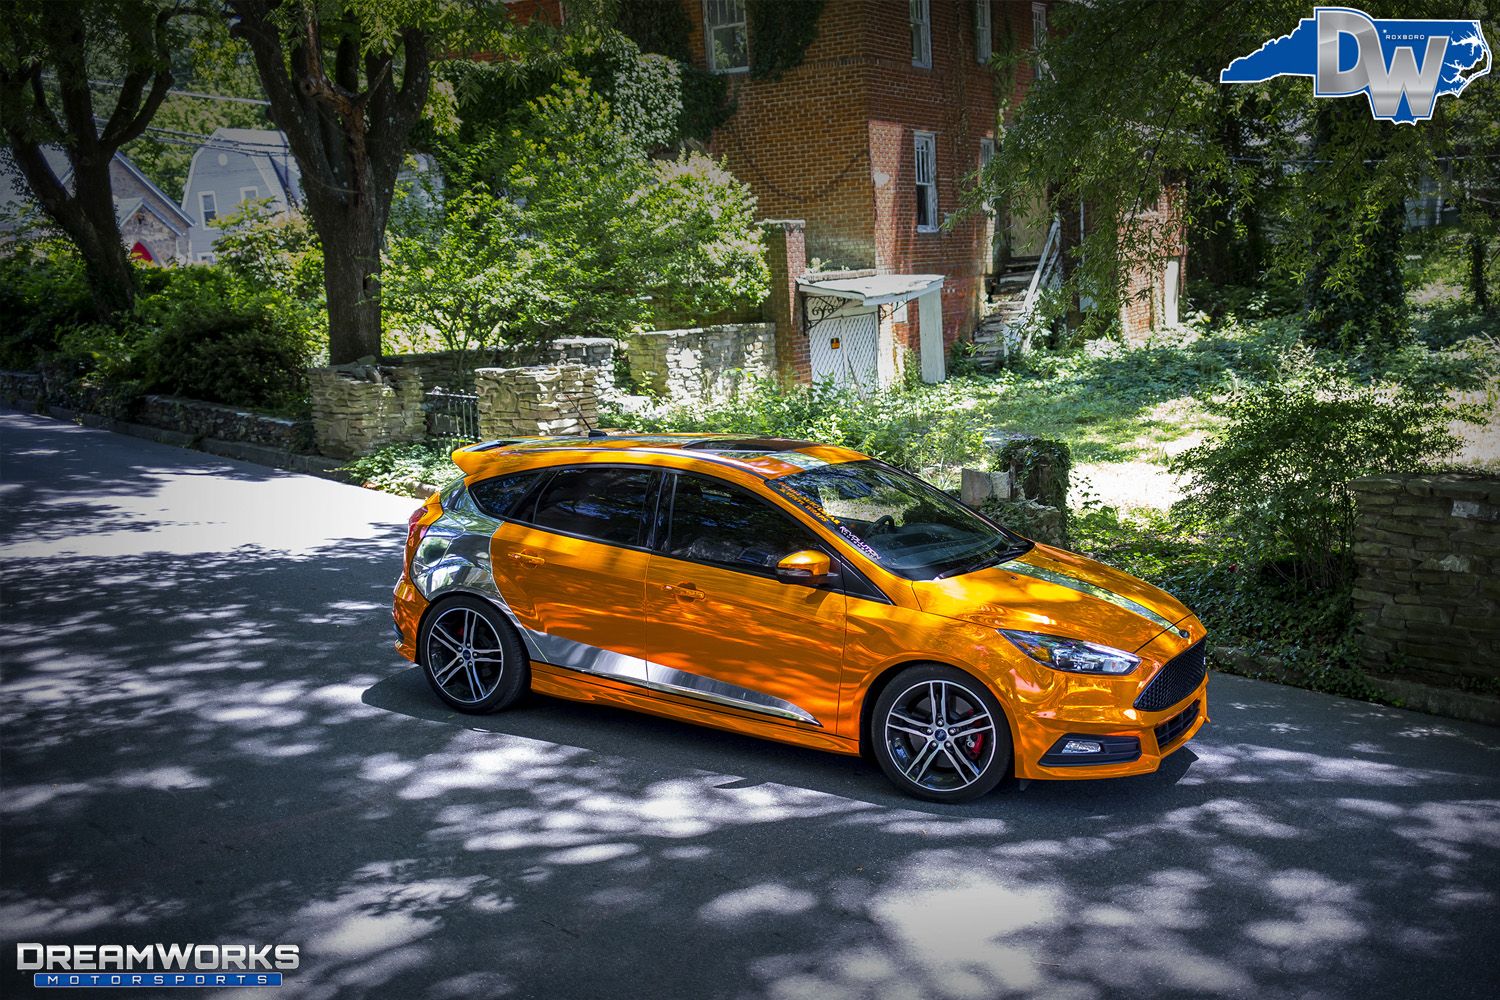 Orange-Metallic-Wrap-Dreamworks-Motorsports-5.jpg